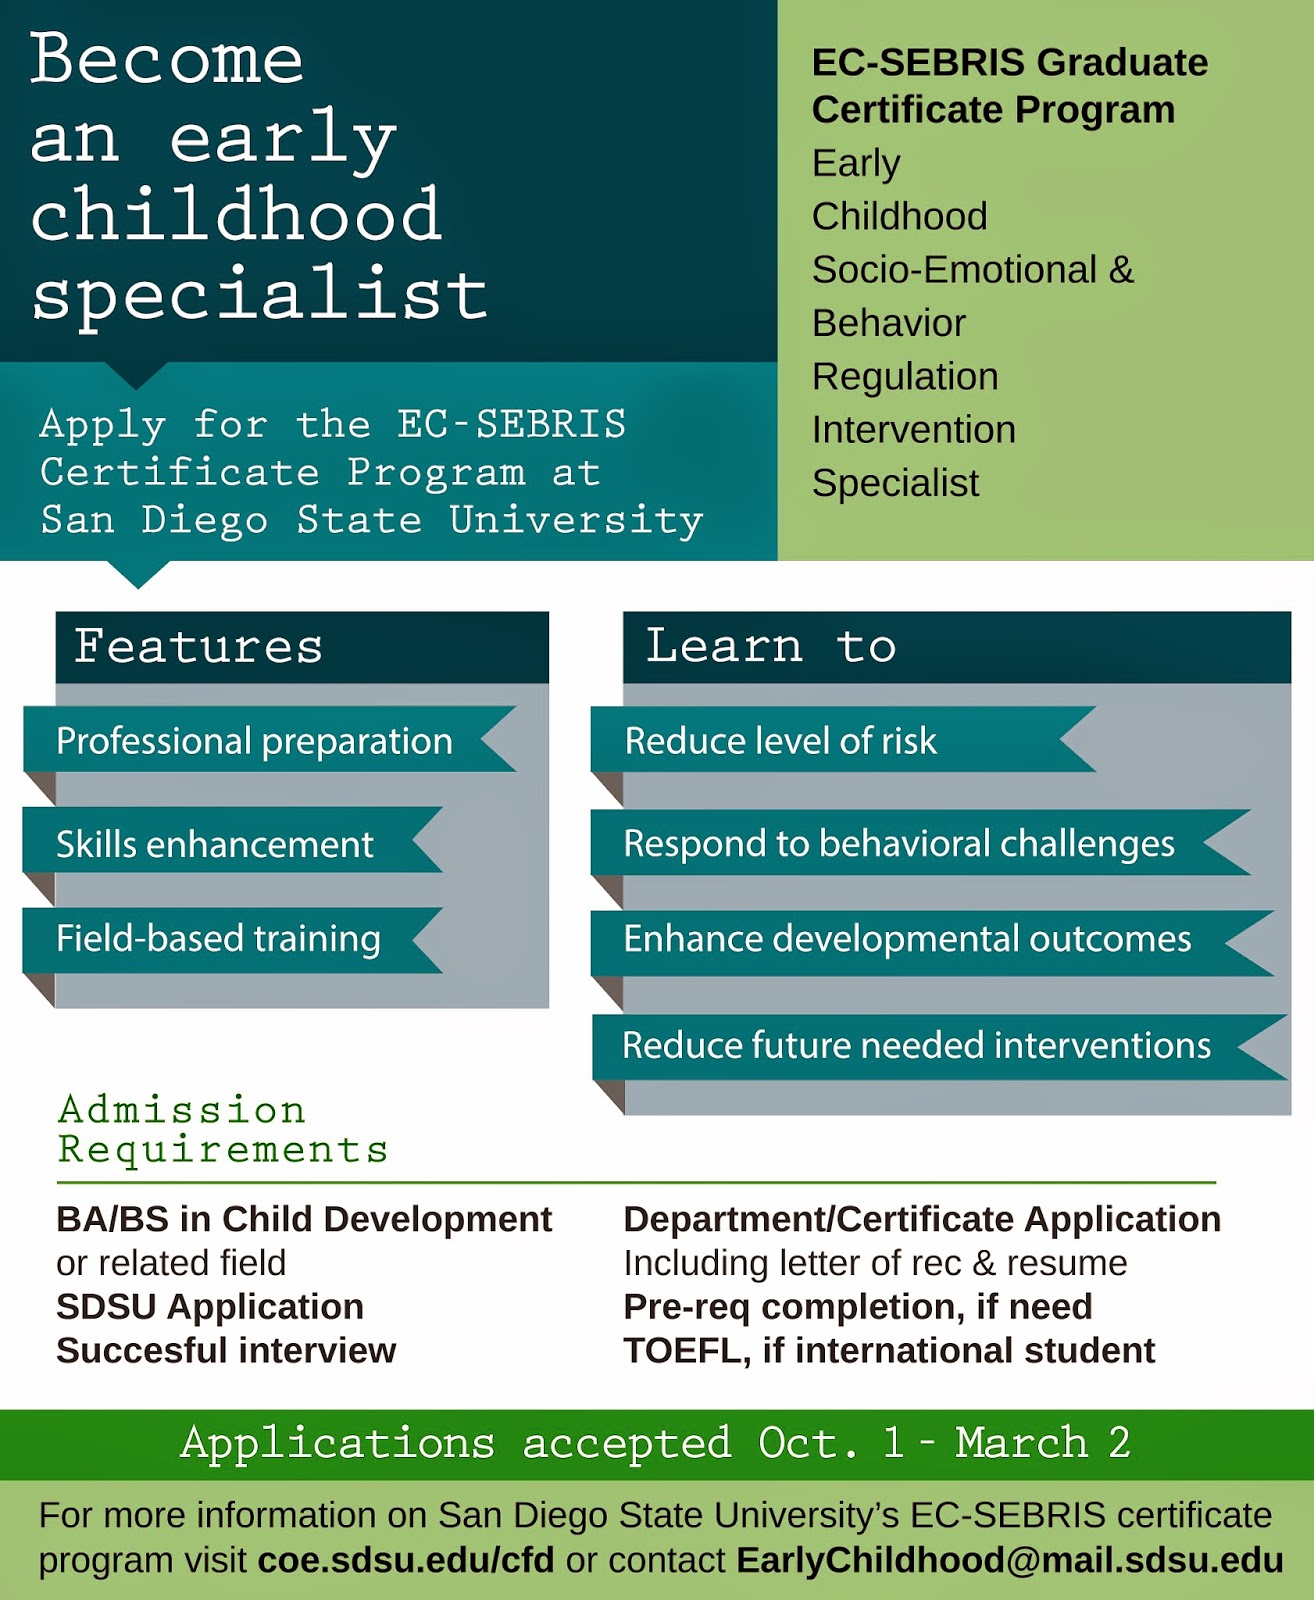 Early childhood at sdsu graduate school infographics on early for more information on our graduate and certificate programs visit coesucfd connect with us on twitter facebook and instagram for program and 1betcityfo Image collections